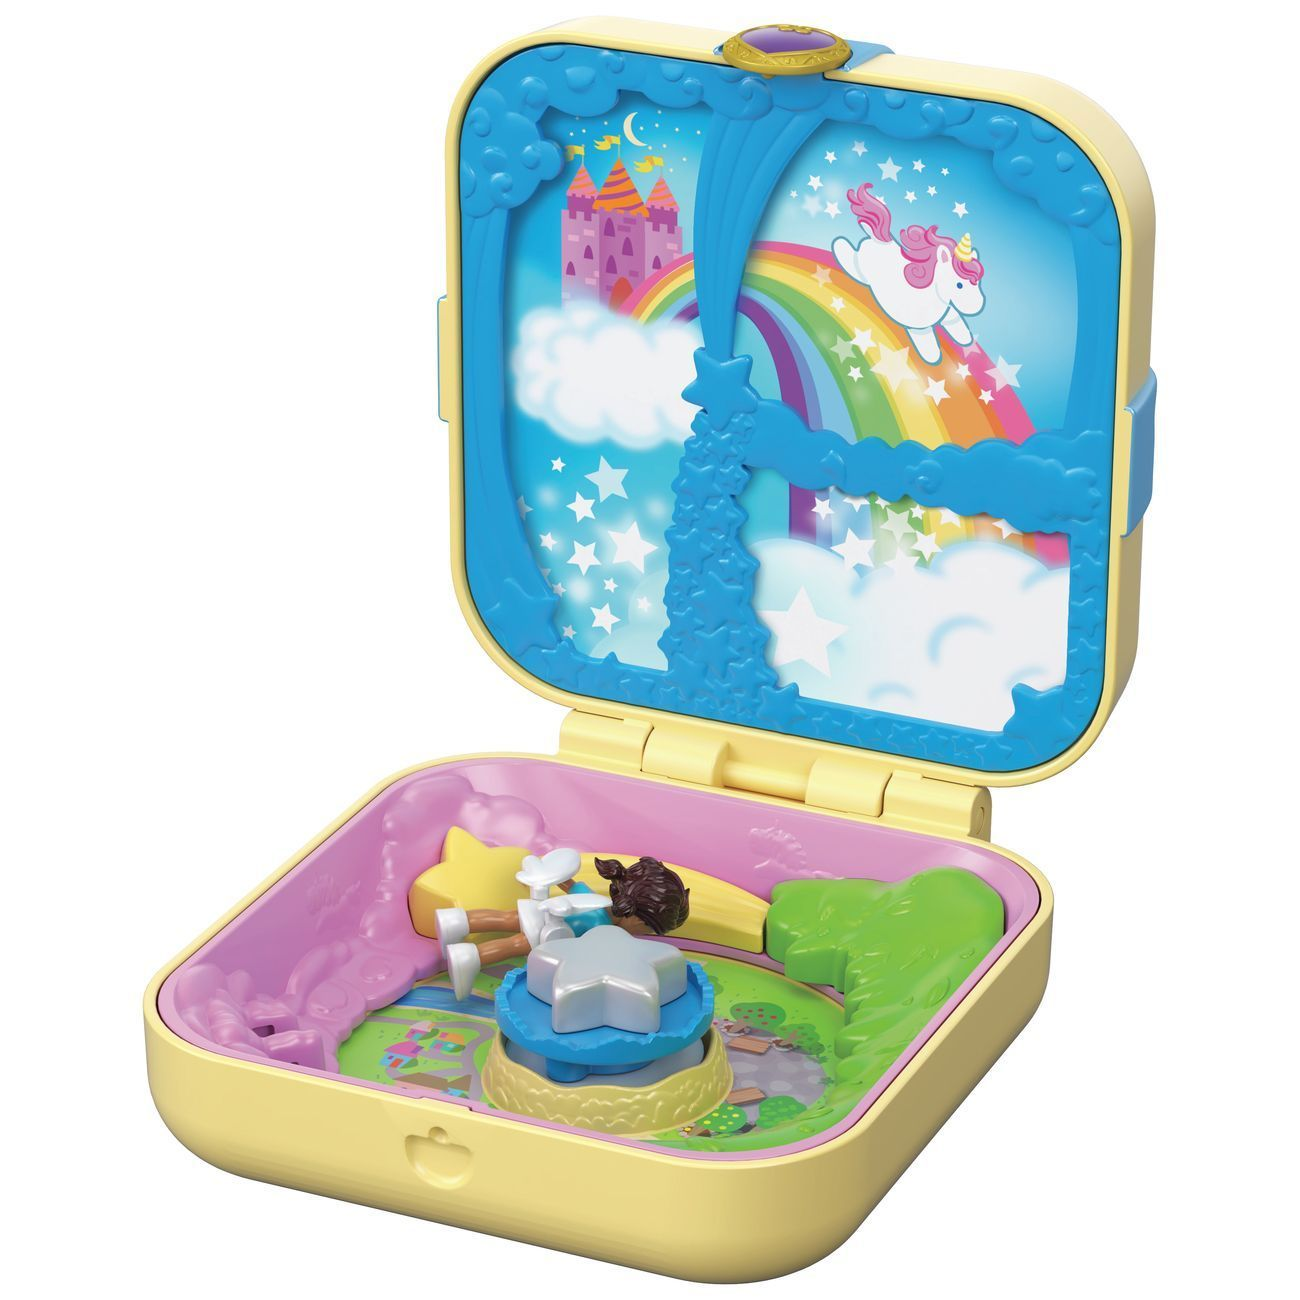 POLLY POCKET HIDDEN HIDEOUTS - UNICORN UTOPIA